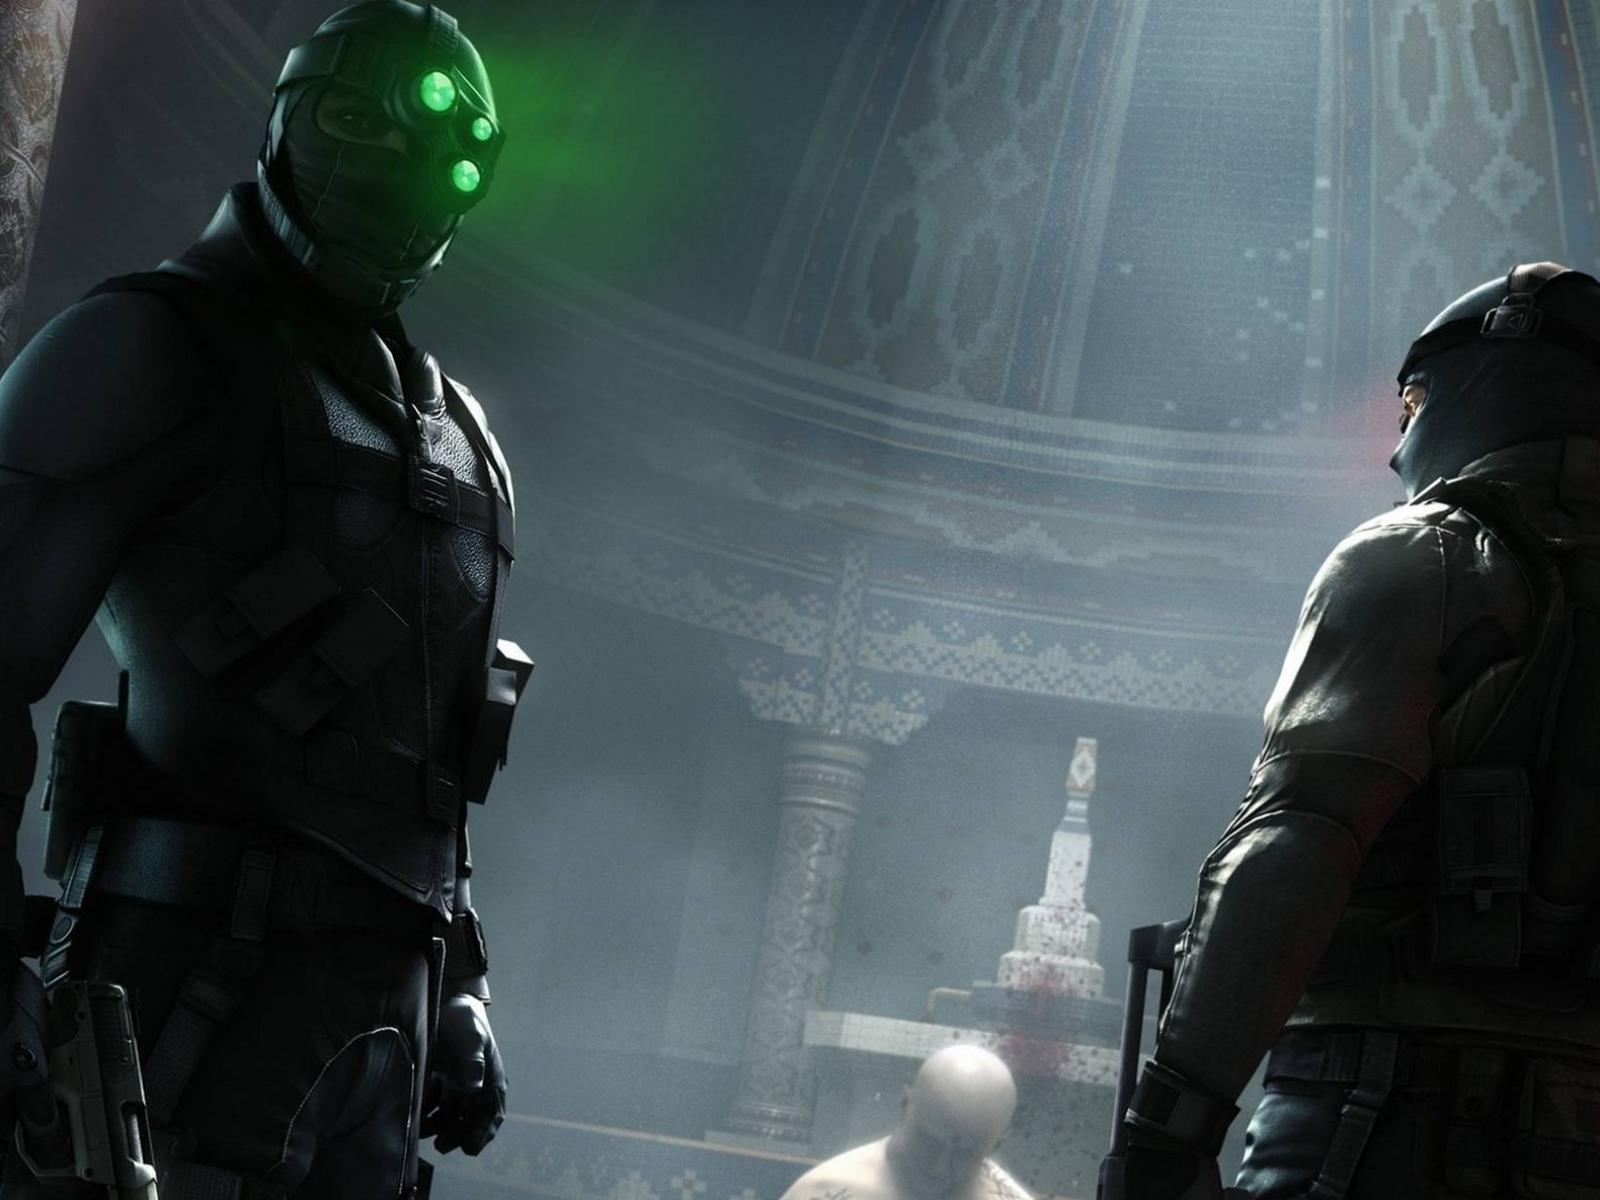 Обои Splinter Cell Conviction на задании 1600x1200